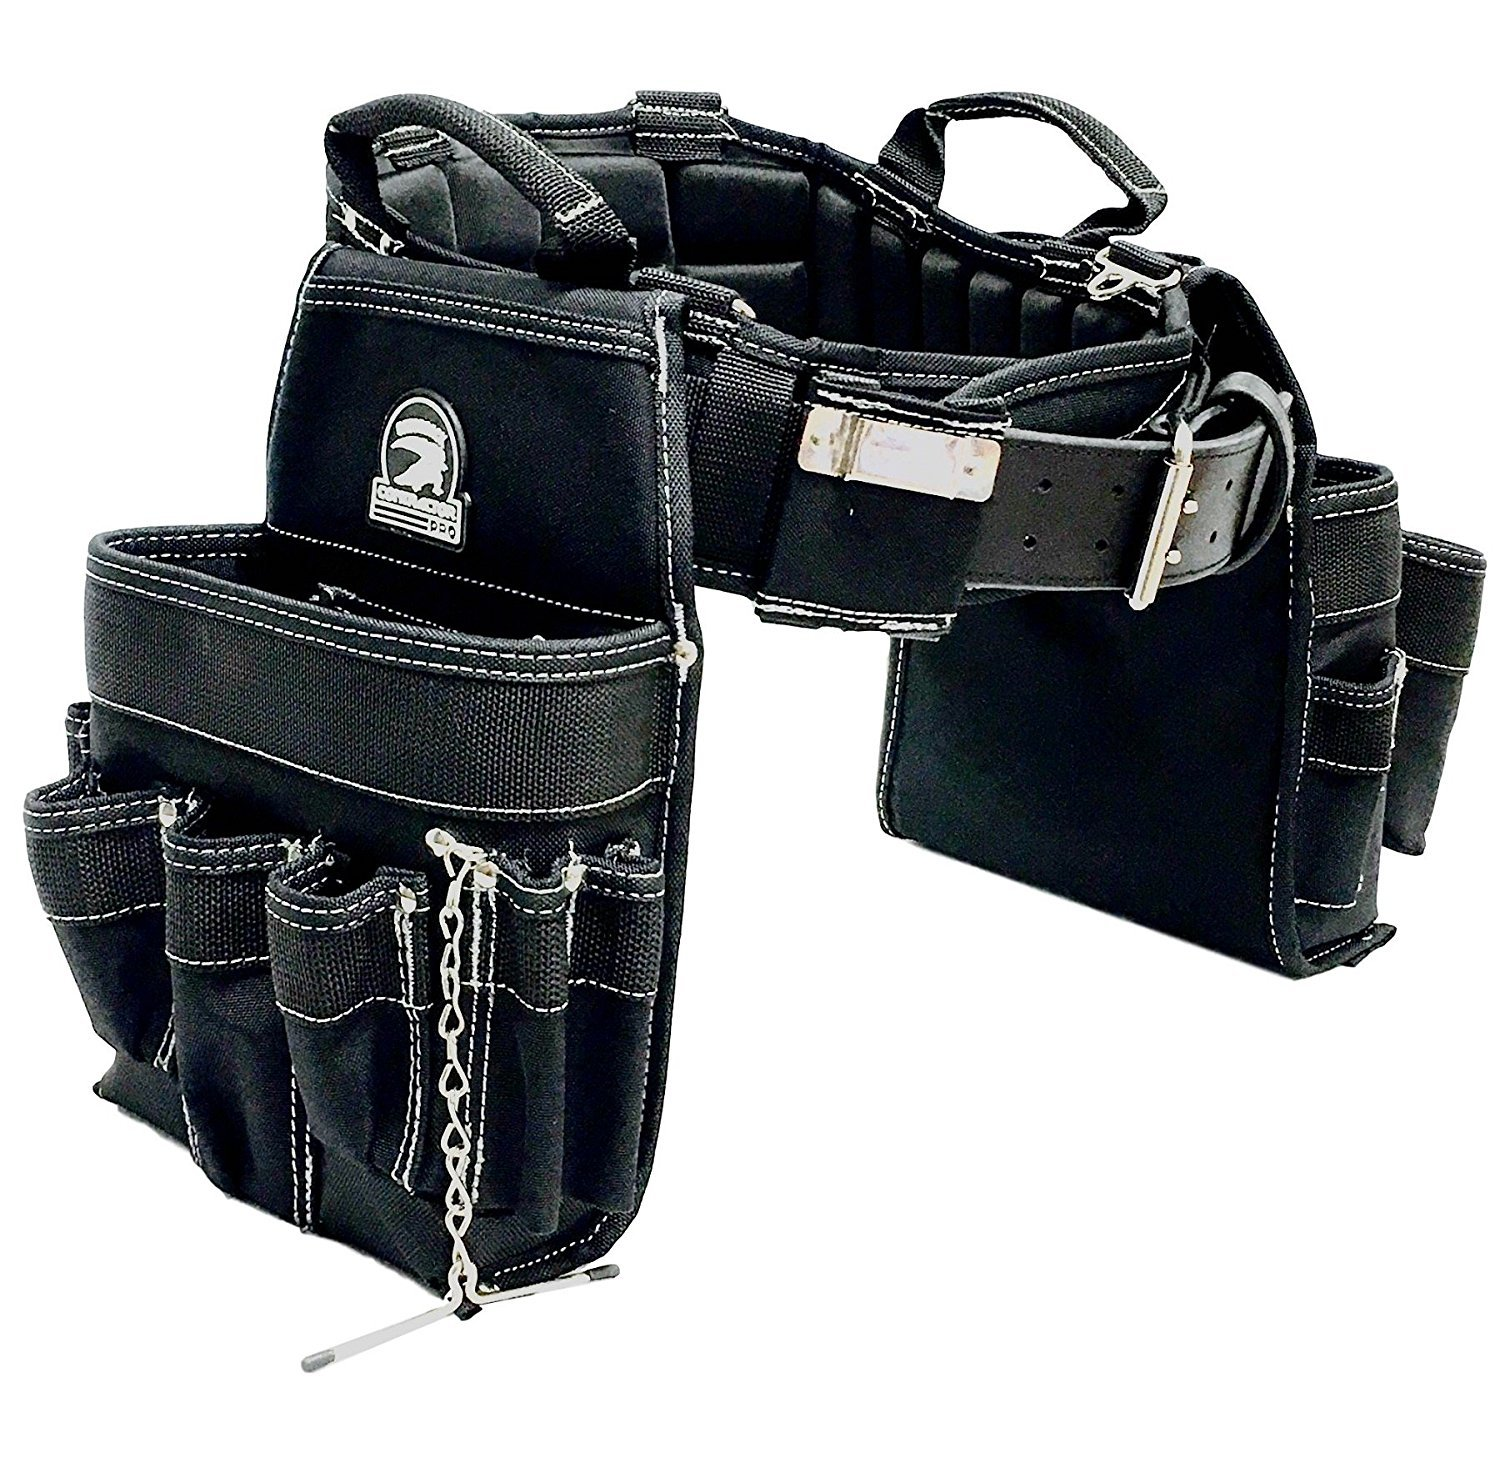 3beeba8d57 The Best HVAC Tool Belts and Pouches - The 2019 Buyers Guide